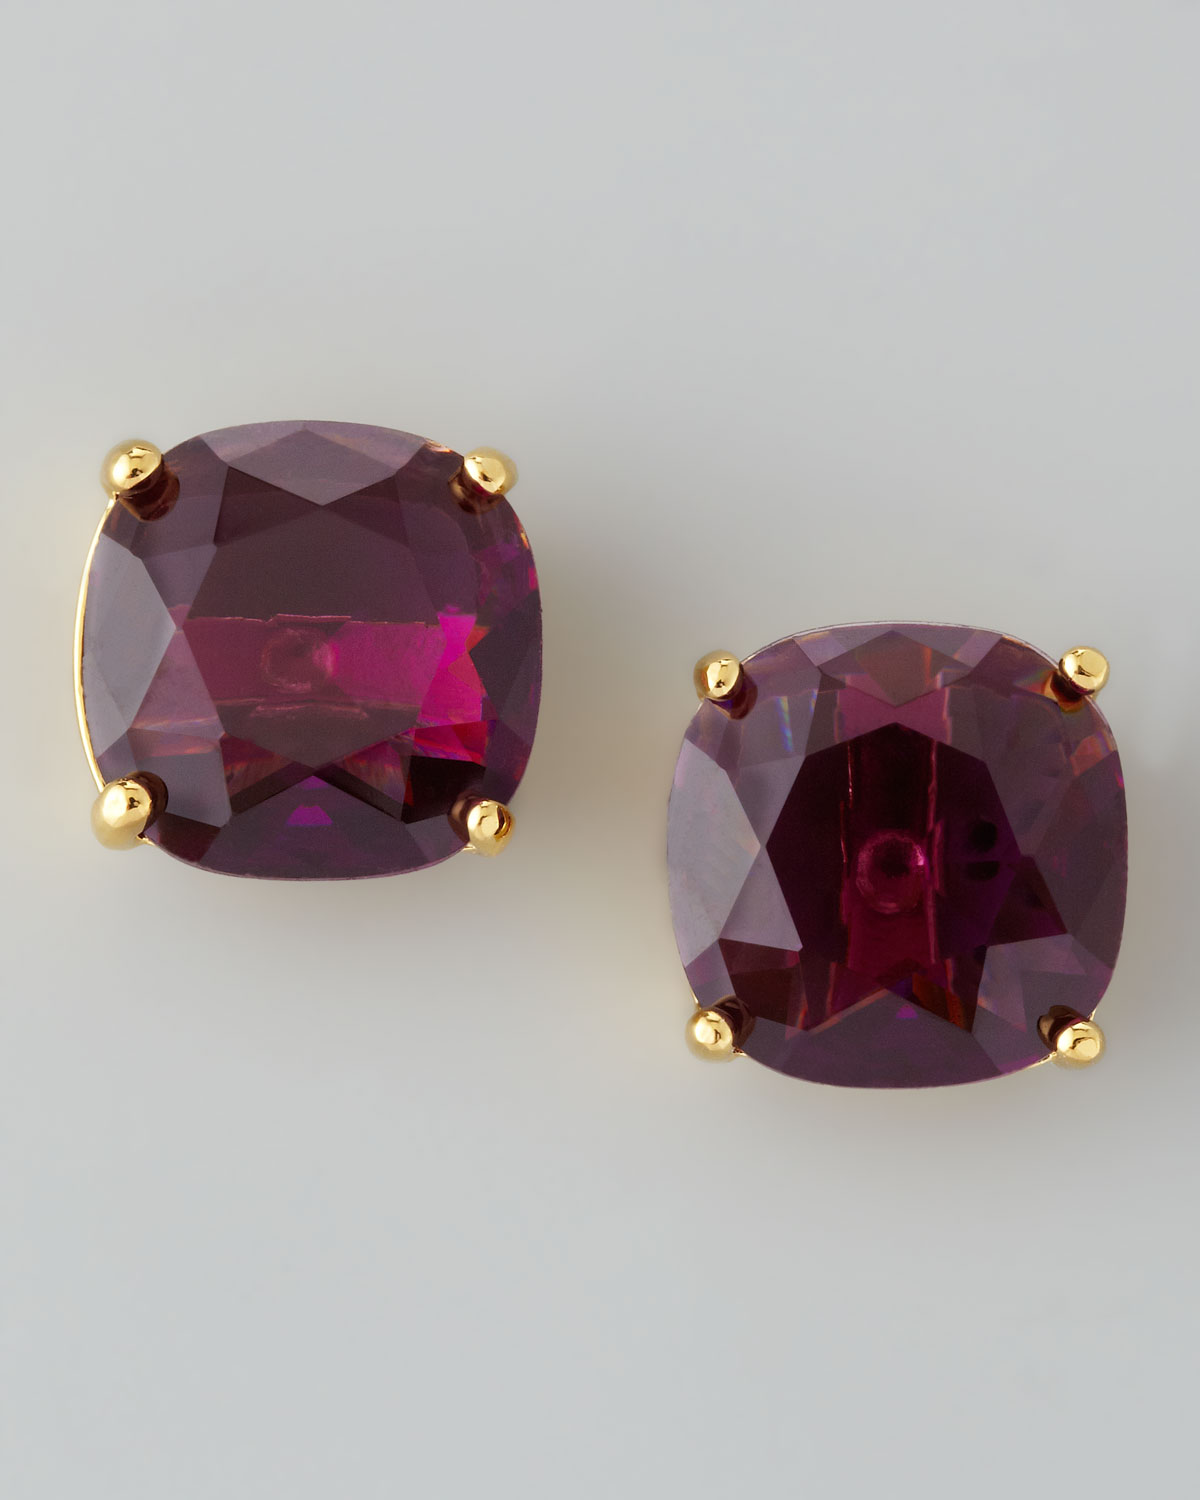 Small Square Stud Earrings, Amethyst   kate spade new york   Amethyst